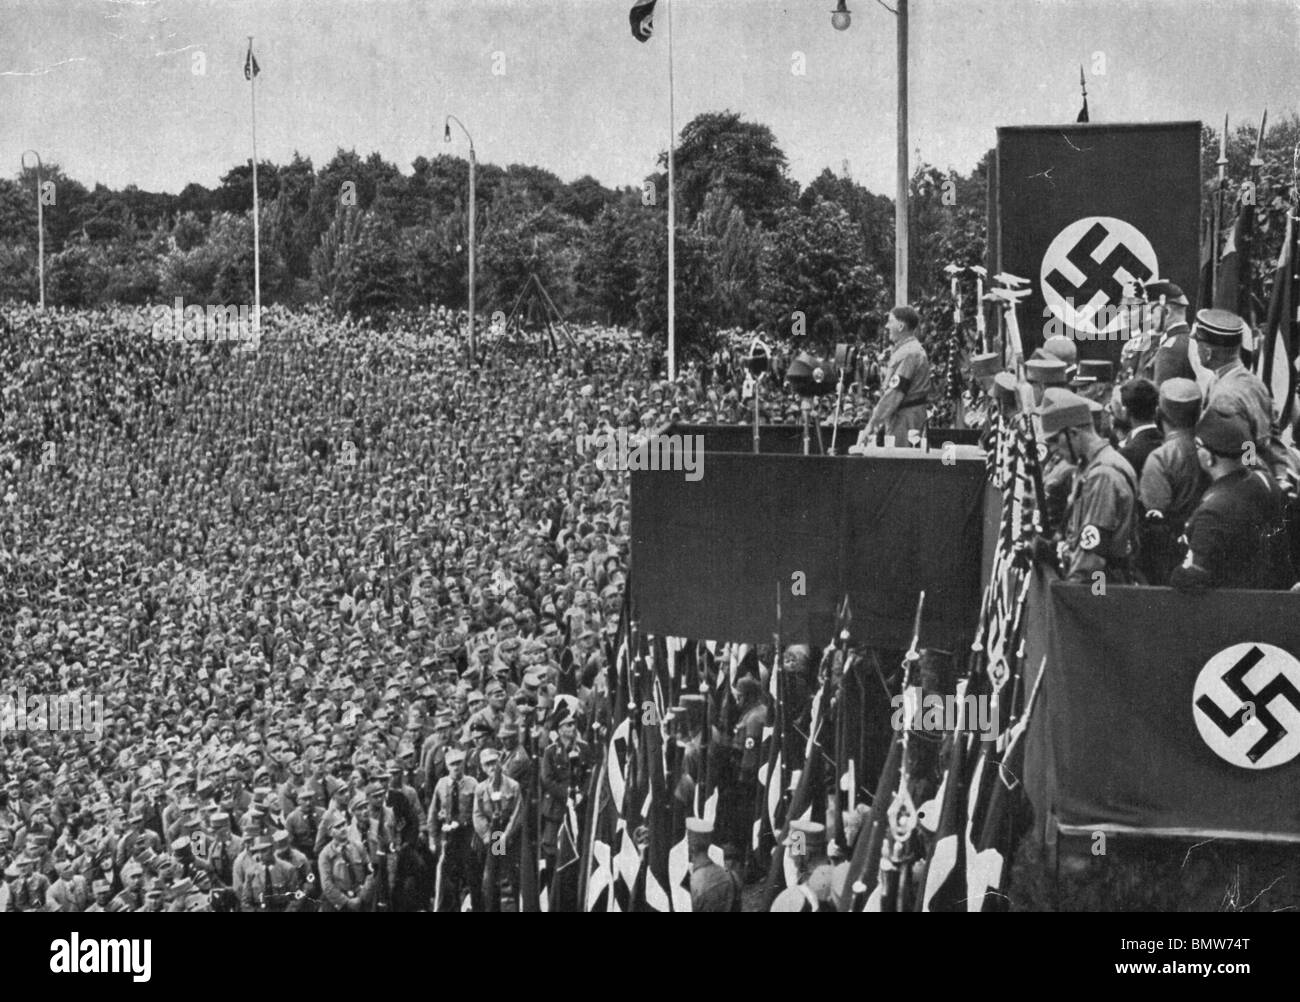 adolf hitler makes a speech in dortmund in 1933 stock photo 30057912 alamy. Black Bedroom Furniture Sets. Home Design Ideas